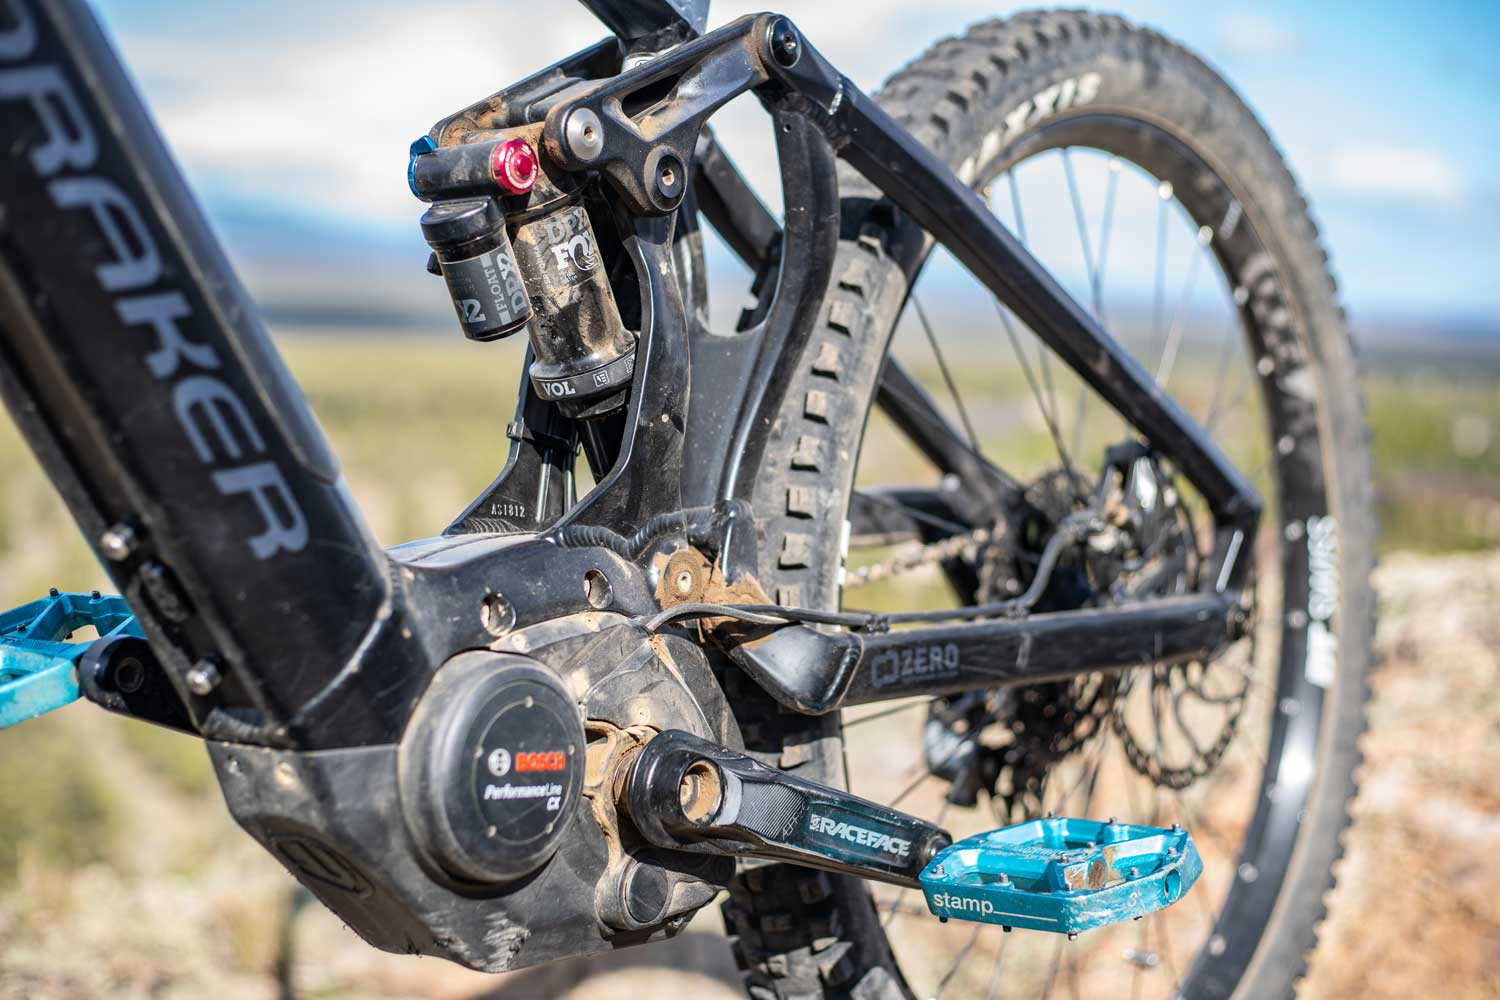 Mondraker Crafty R bosch cx pedal system with dirt